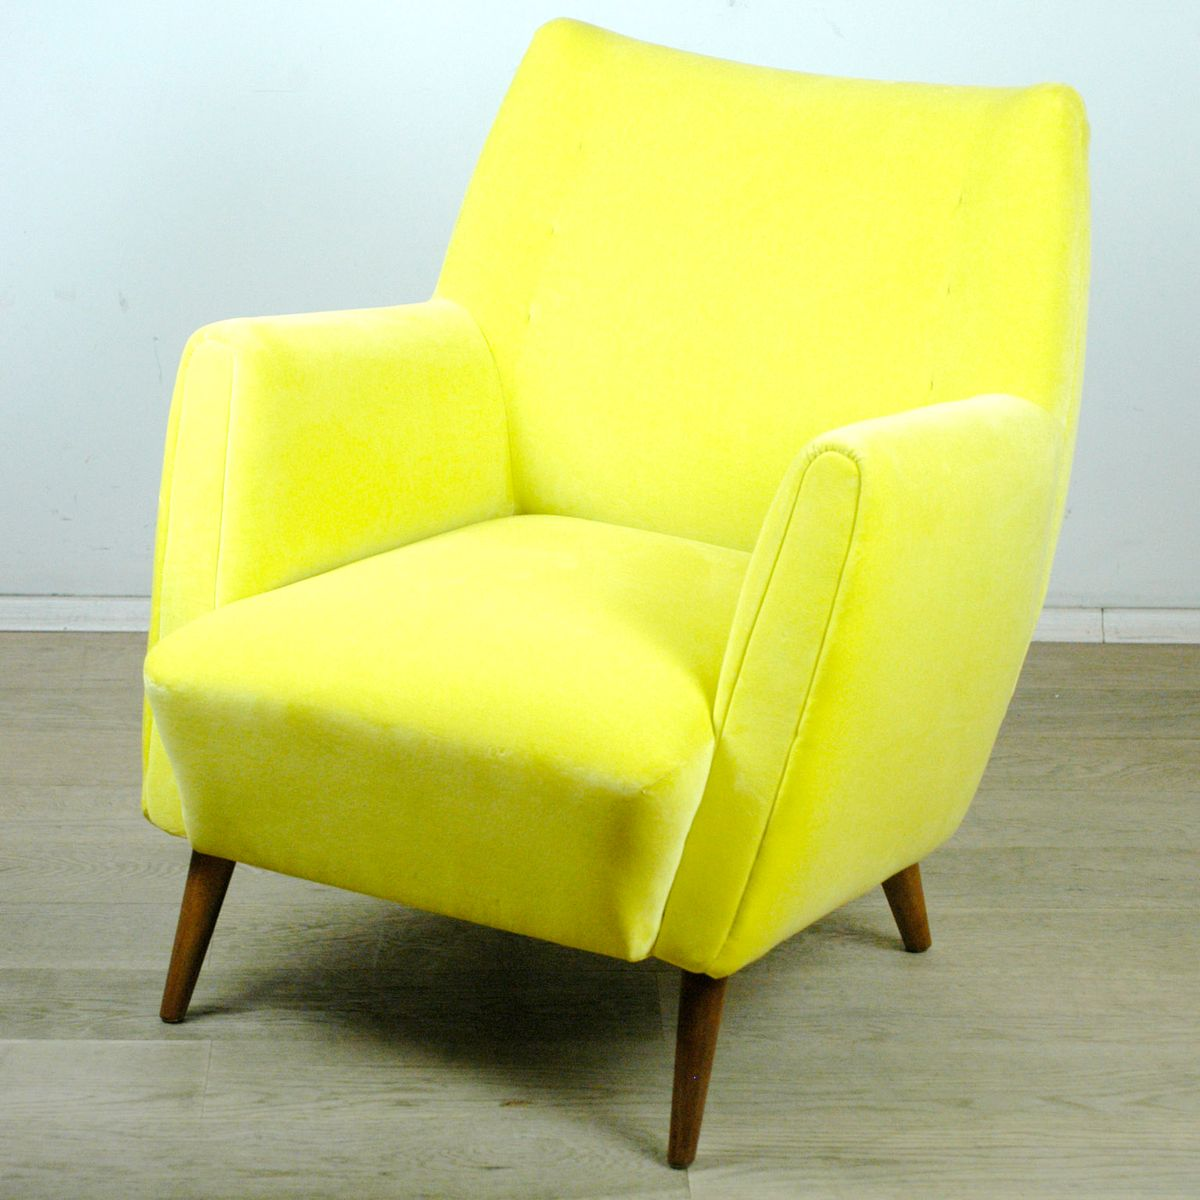 fauteuil en velours jaune par oskar payer autriche en vente sur pamono. Black Bedroom Furniture Sets. Home Design Ideas